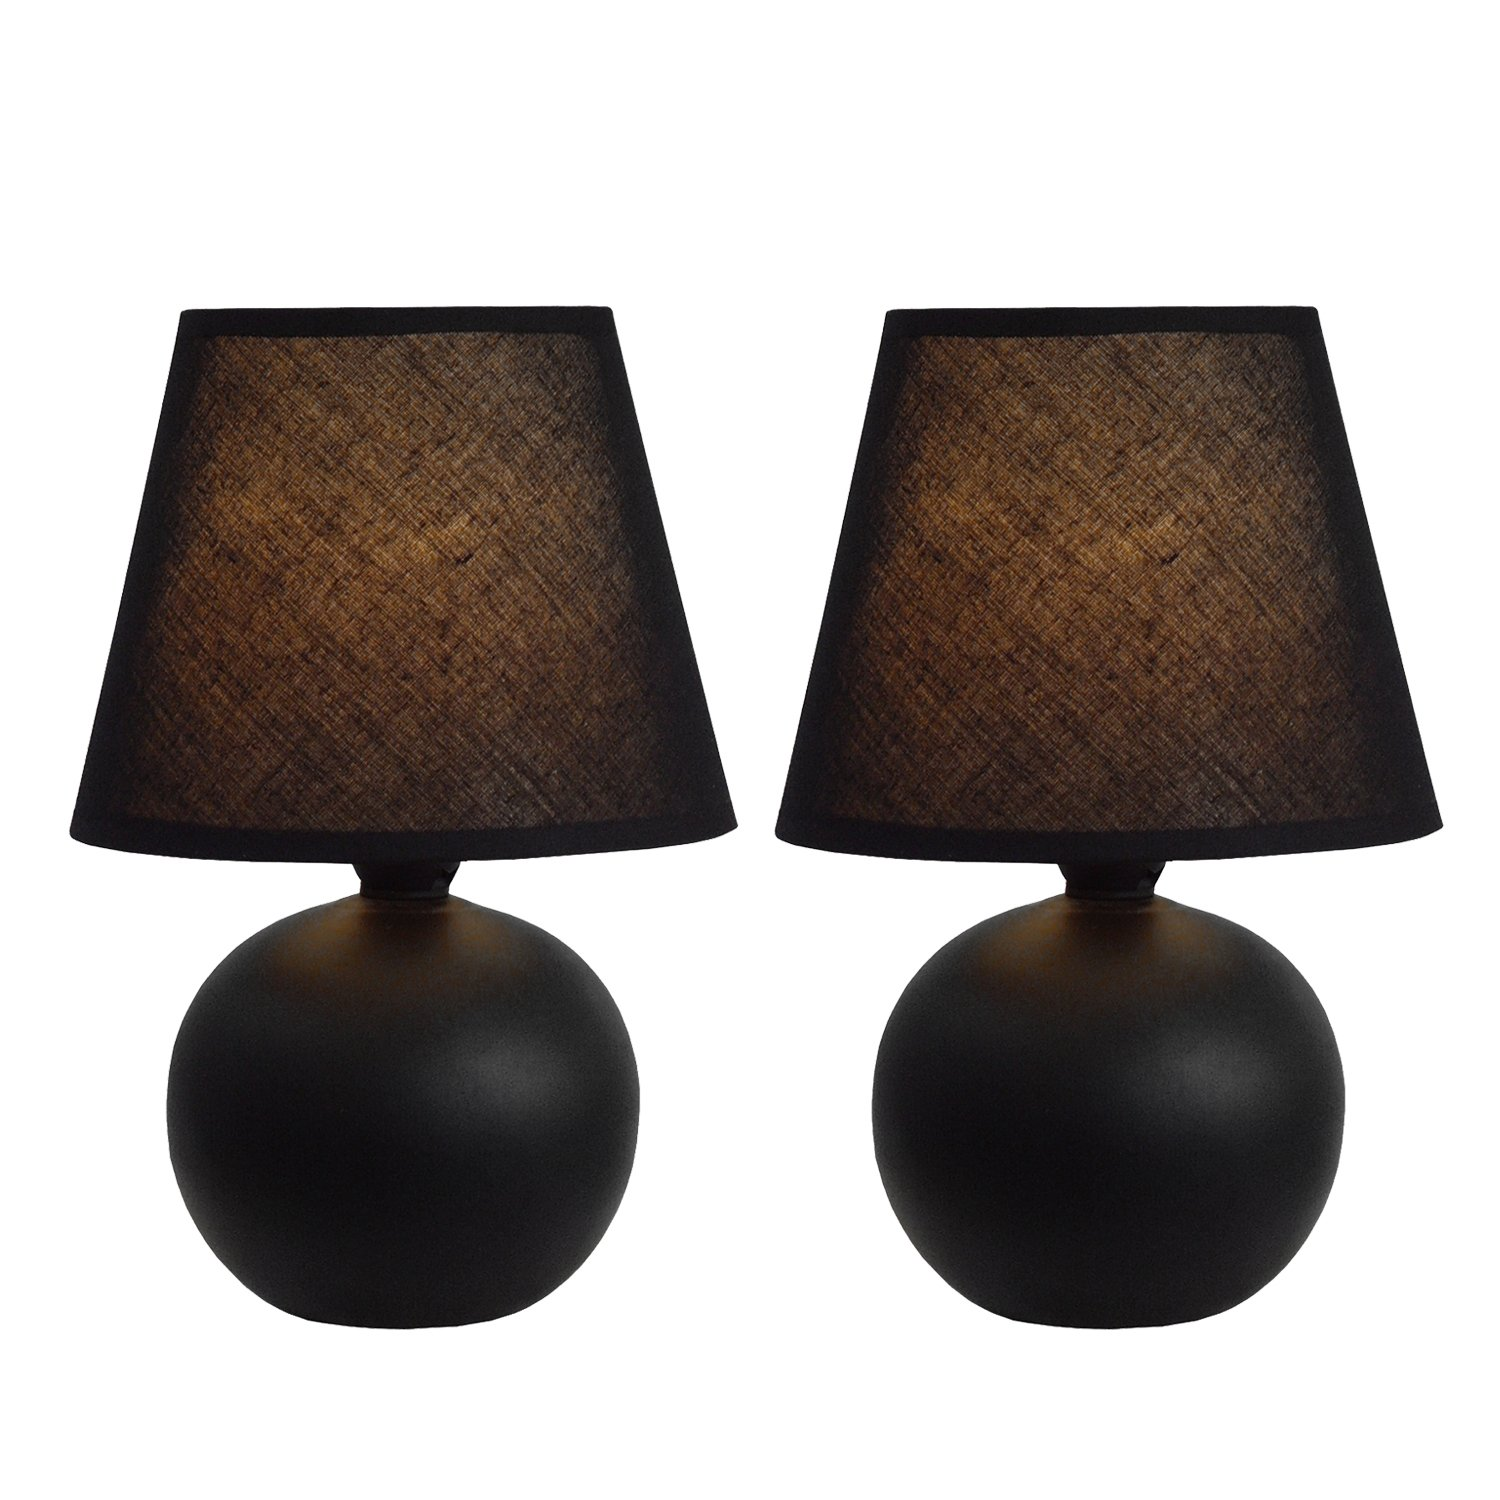 Simple Designs Home LT2008-BLK-2PK Mini Ceramic Globe Table Lamp 2 Pack Set, 5.51'' x 5.51'' x 8.66'', Black by Simple Designs Home